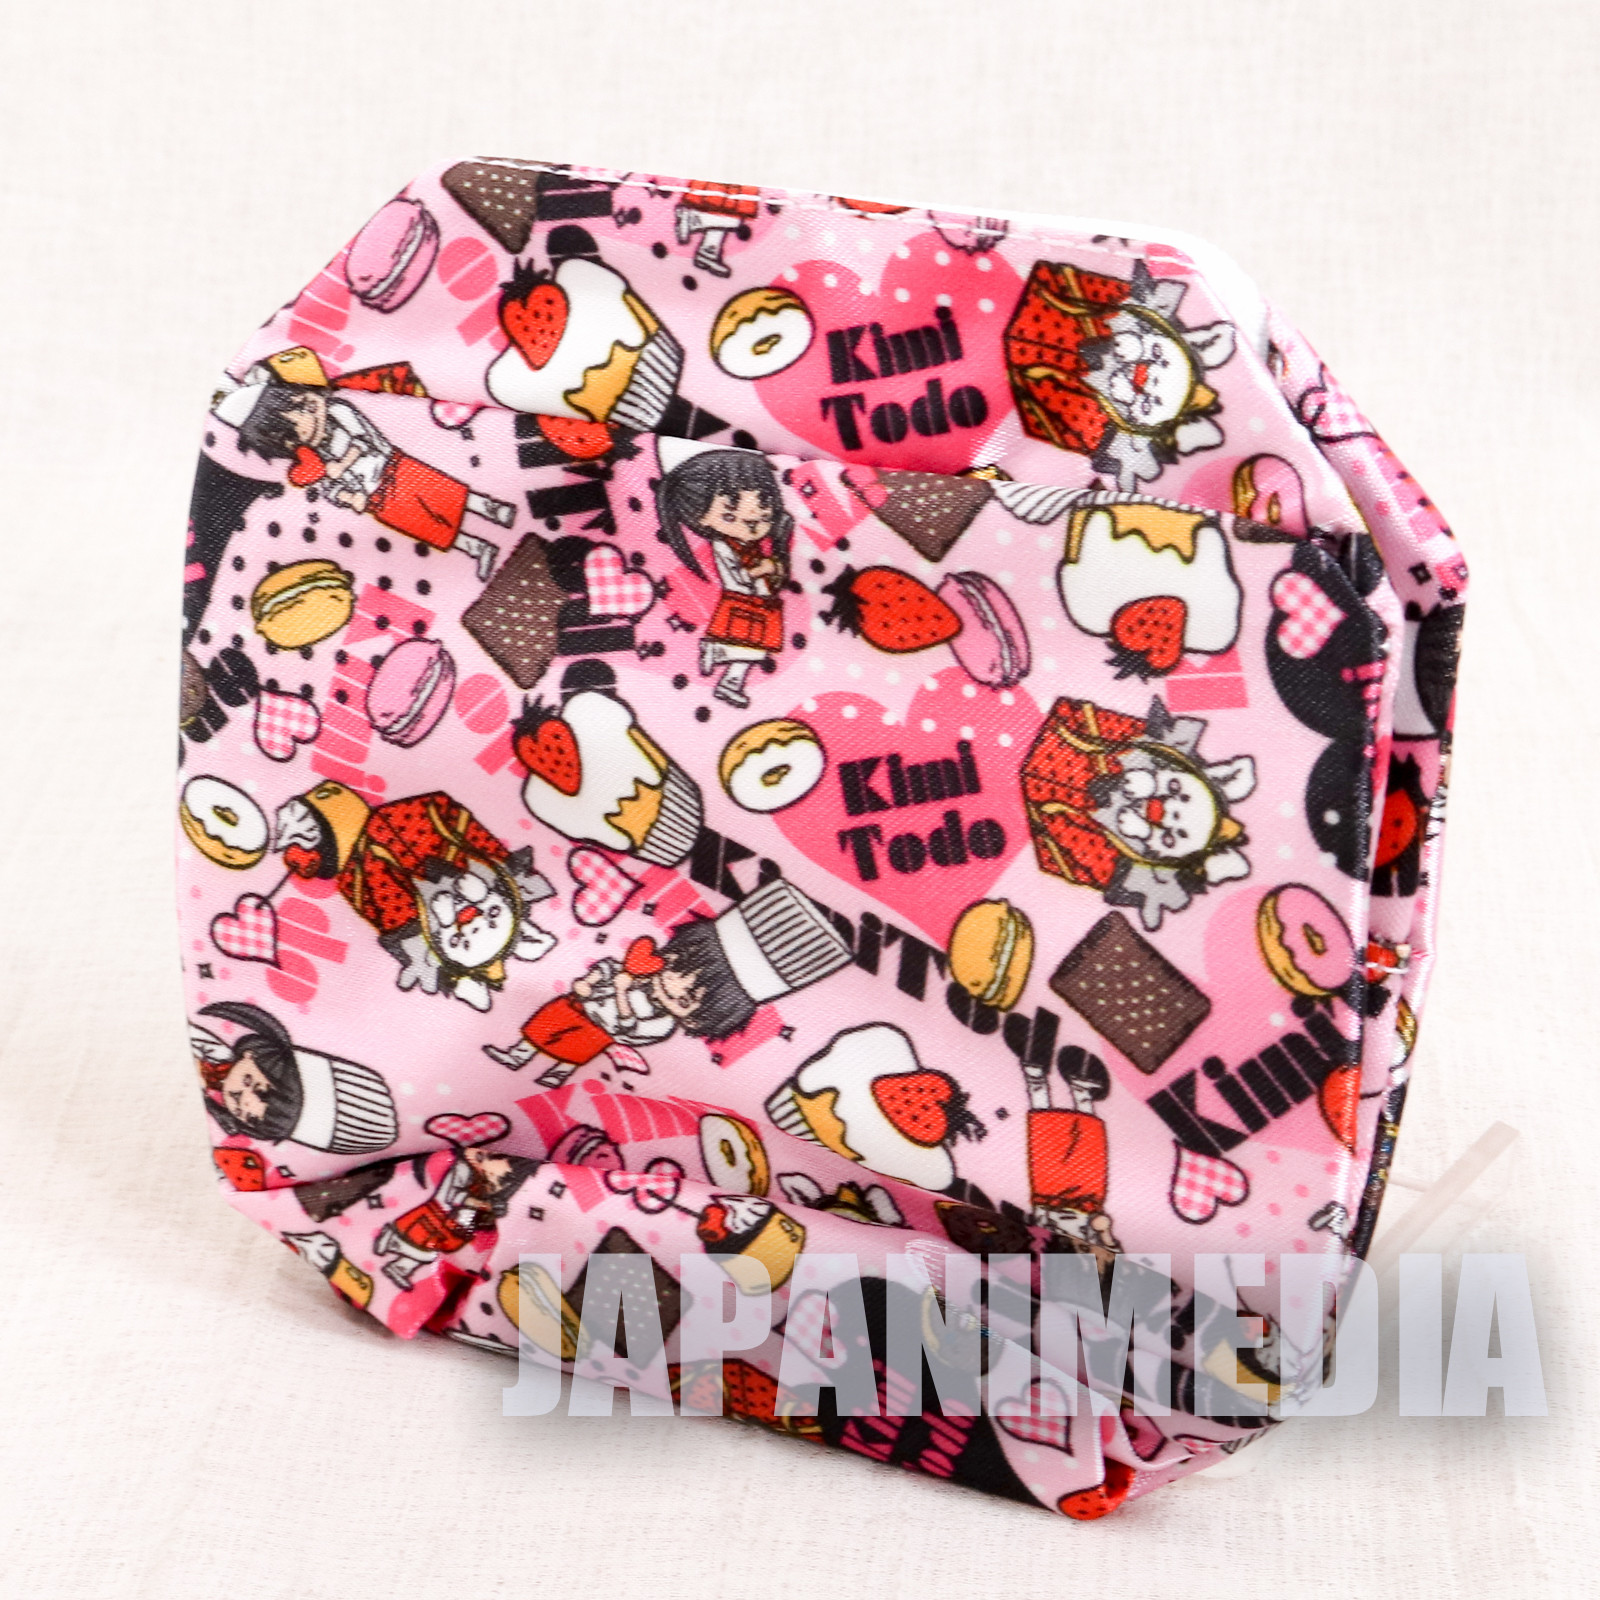 Kimi ni Todoke Sawako & Kazehaya Pouch Mini Bag JAPAN ANIME